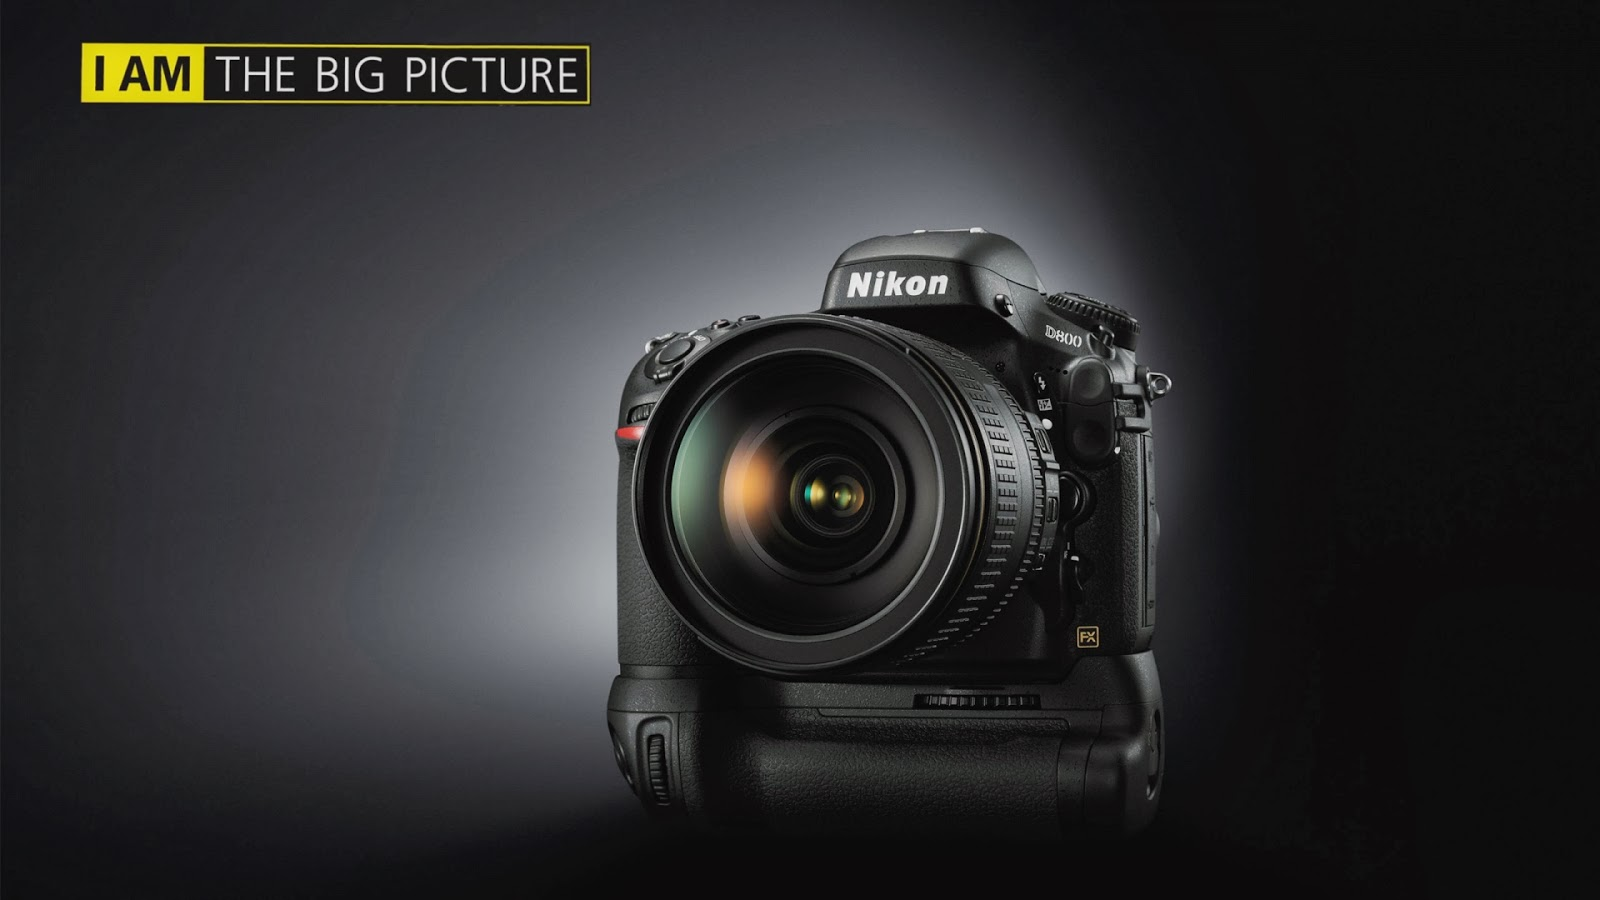 Girl With A Nikom Camera Wallpaper